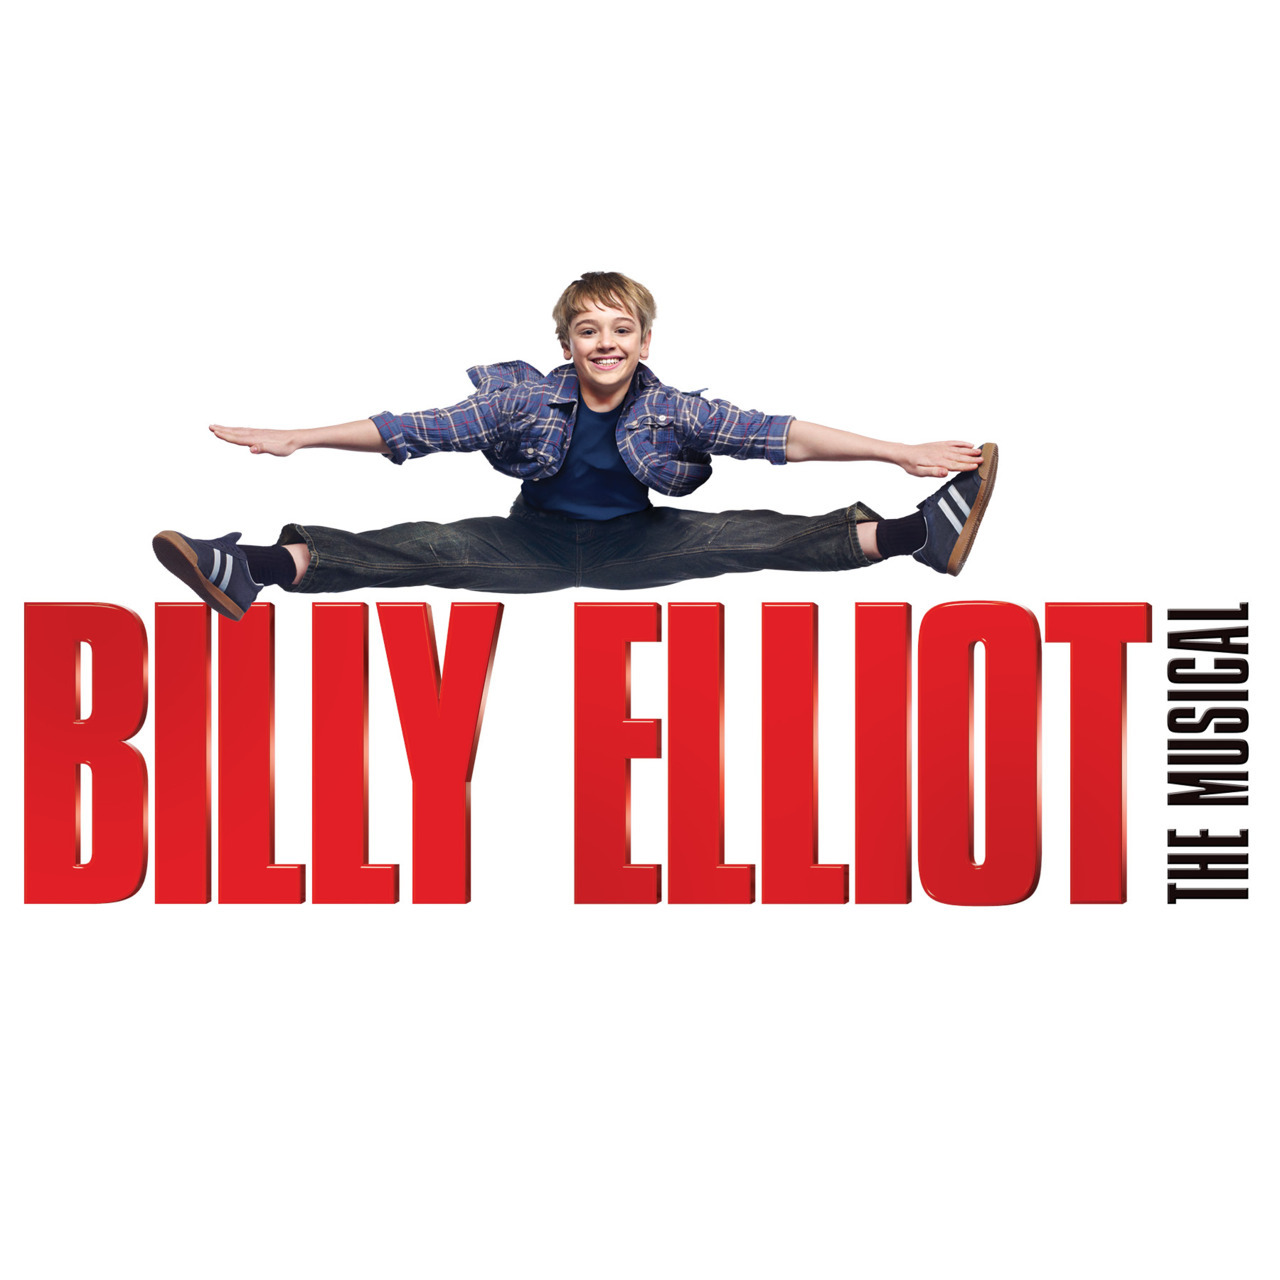 Exclusive Billy Elliot contest! I am very excited to announce that i will be doing an exclusive ticket giveaway for Billy Elliot tickets! The contest is very simple just email me at claude.rbtl@gmail.com stating what/who inspires you! The most inspirational answer will win a pair of tickets to the Wednesday November 30 at 7:30pm at the Rochester Auditorium Theater. Contest ends on tuesday the 29th at noon and winner will be notified via email!  Good Luck! clAUDe